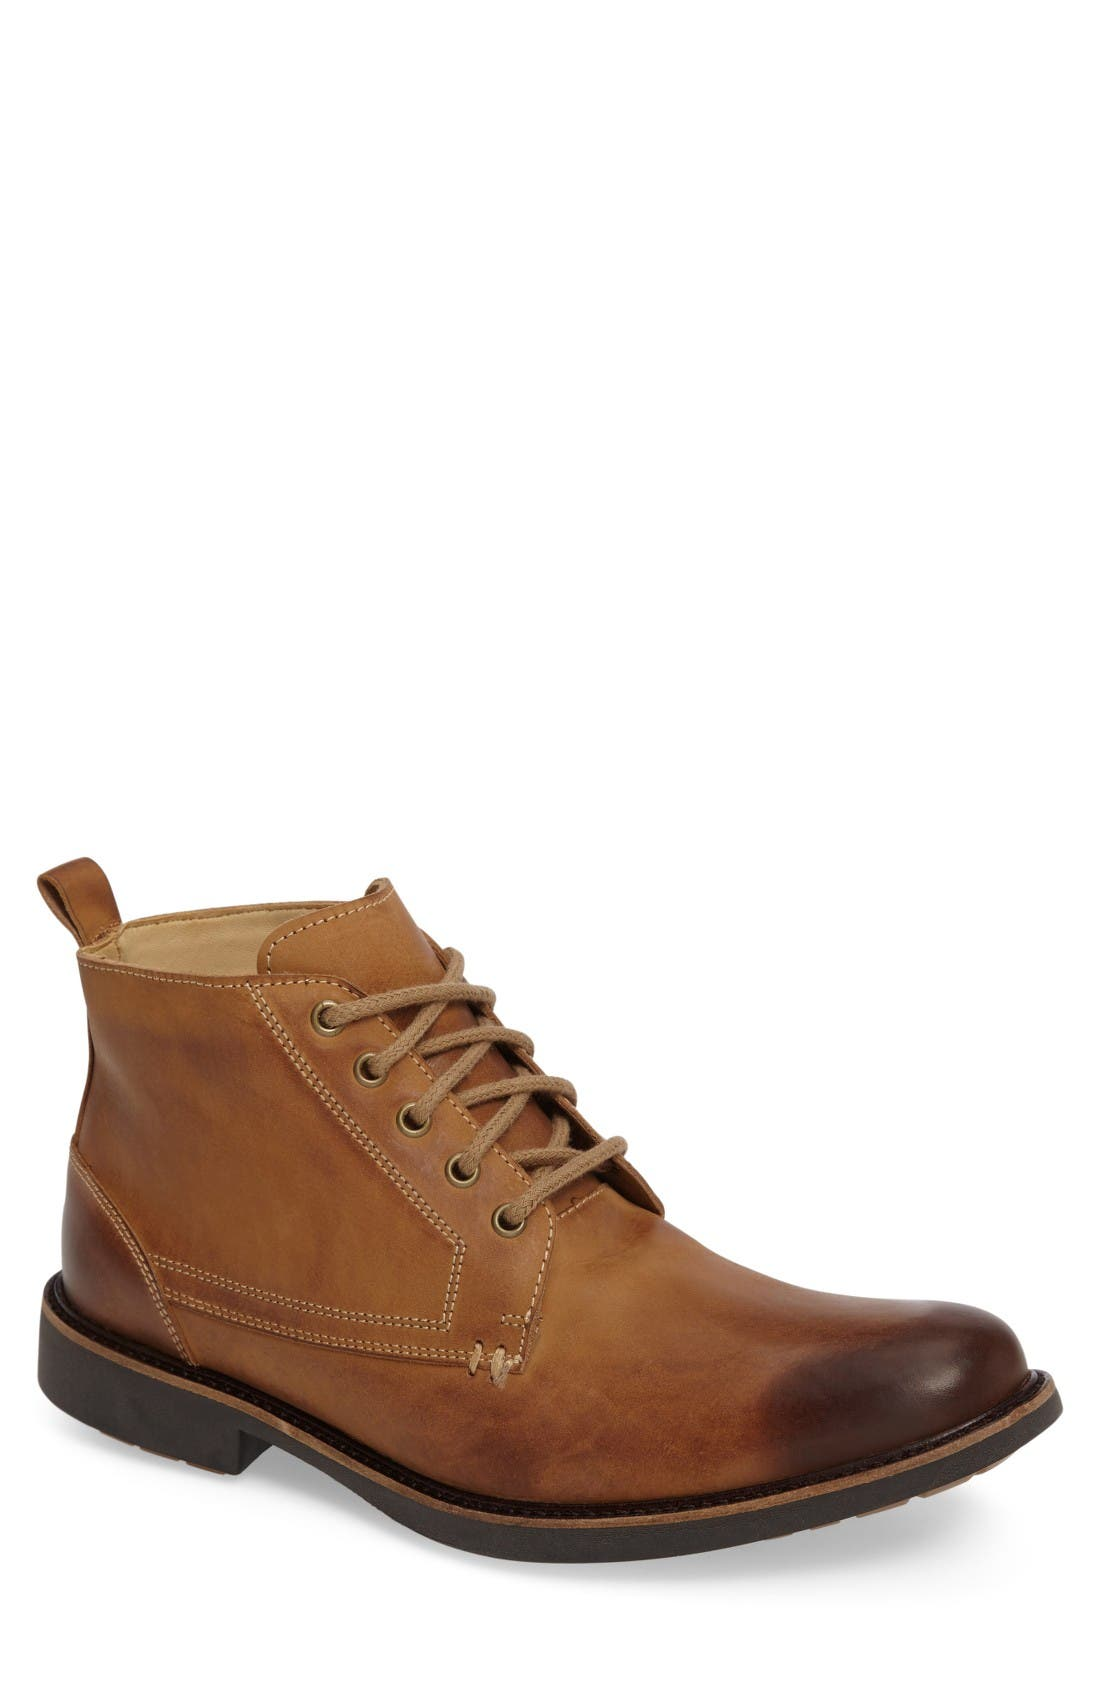 Alternate Image 1 Selected - Anatomic & Co. 'Pedras' Boot (Men)